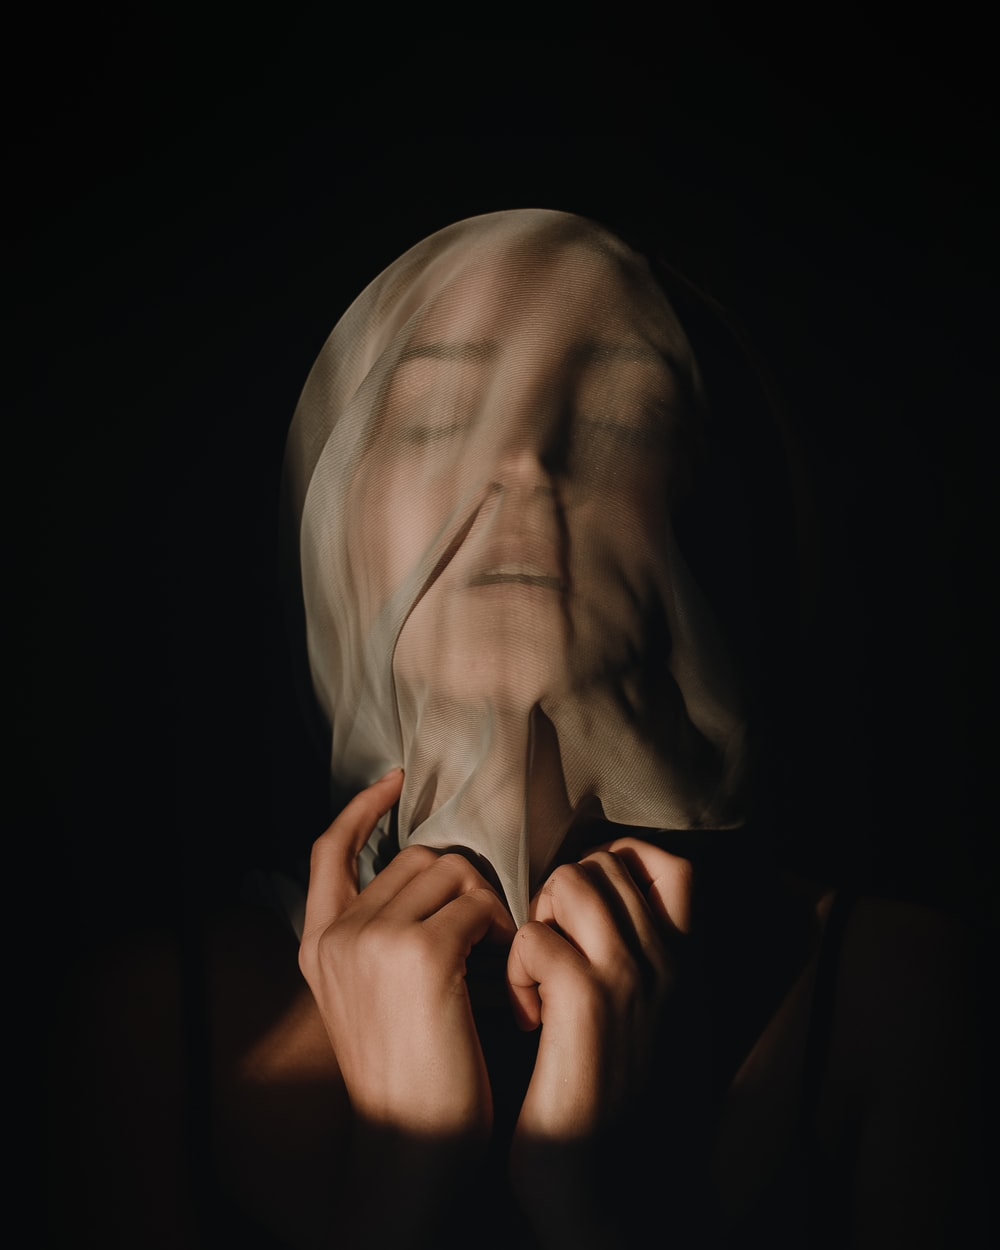 person covering face with hands